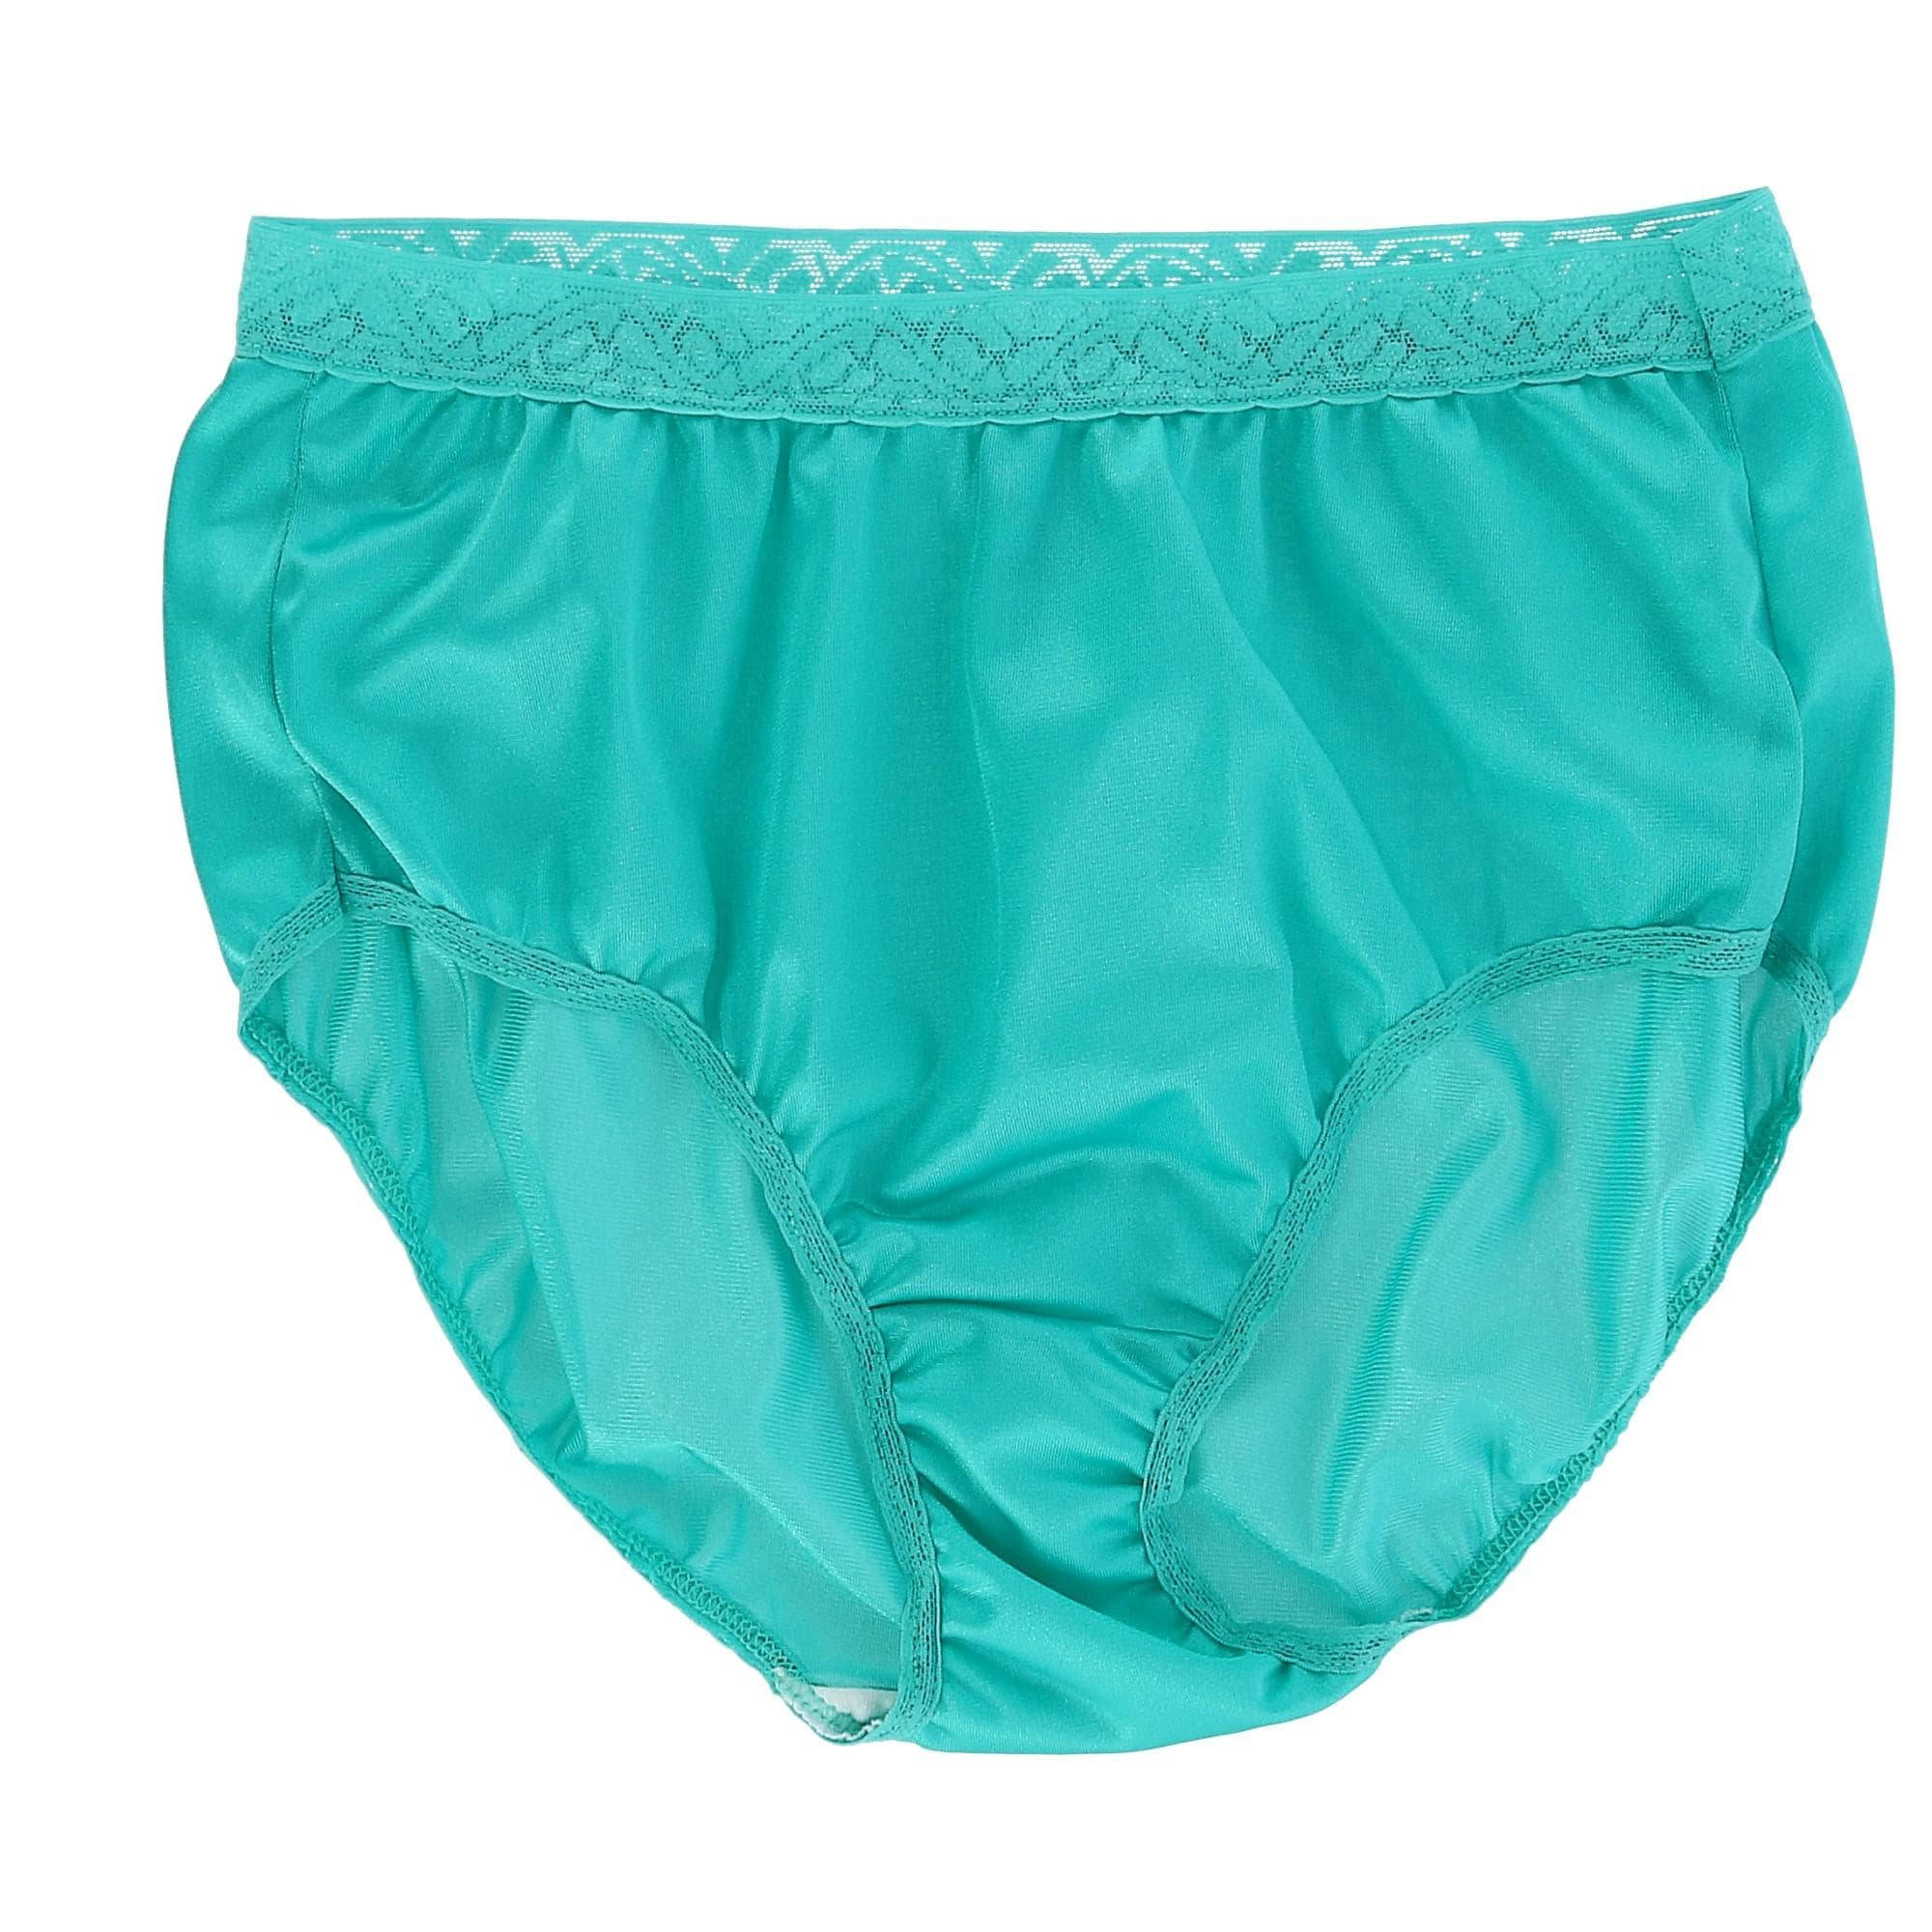 036f0f56554d Shop Fruit of the Loom Women's Nylon Lace Trim Brief Underwear (6 Pack) -  Free Shipping On Orders Over $45 - Overstock - 25483585